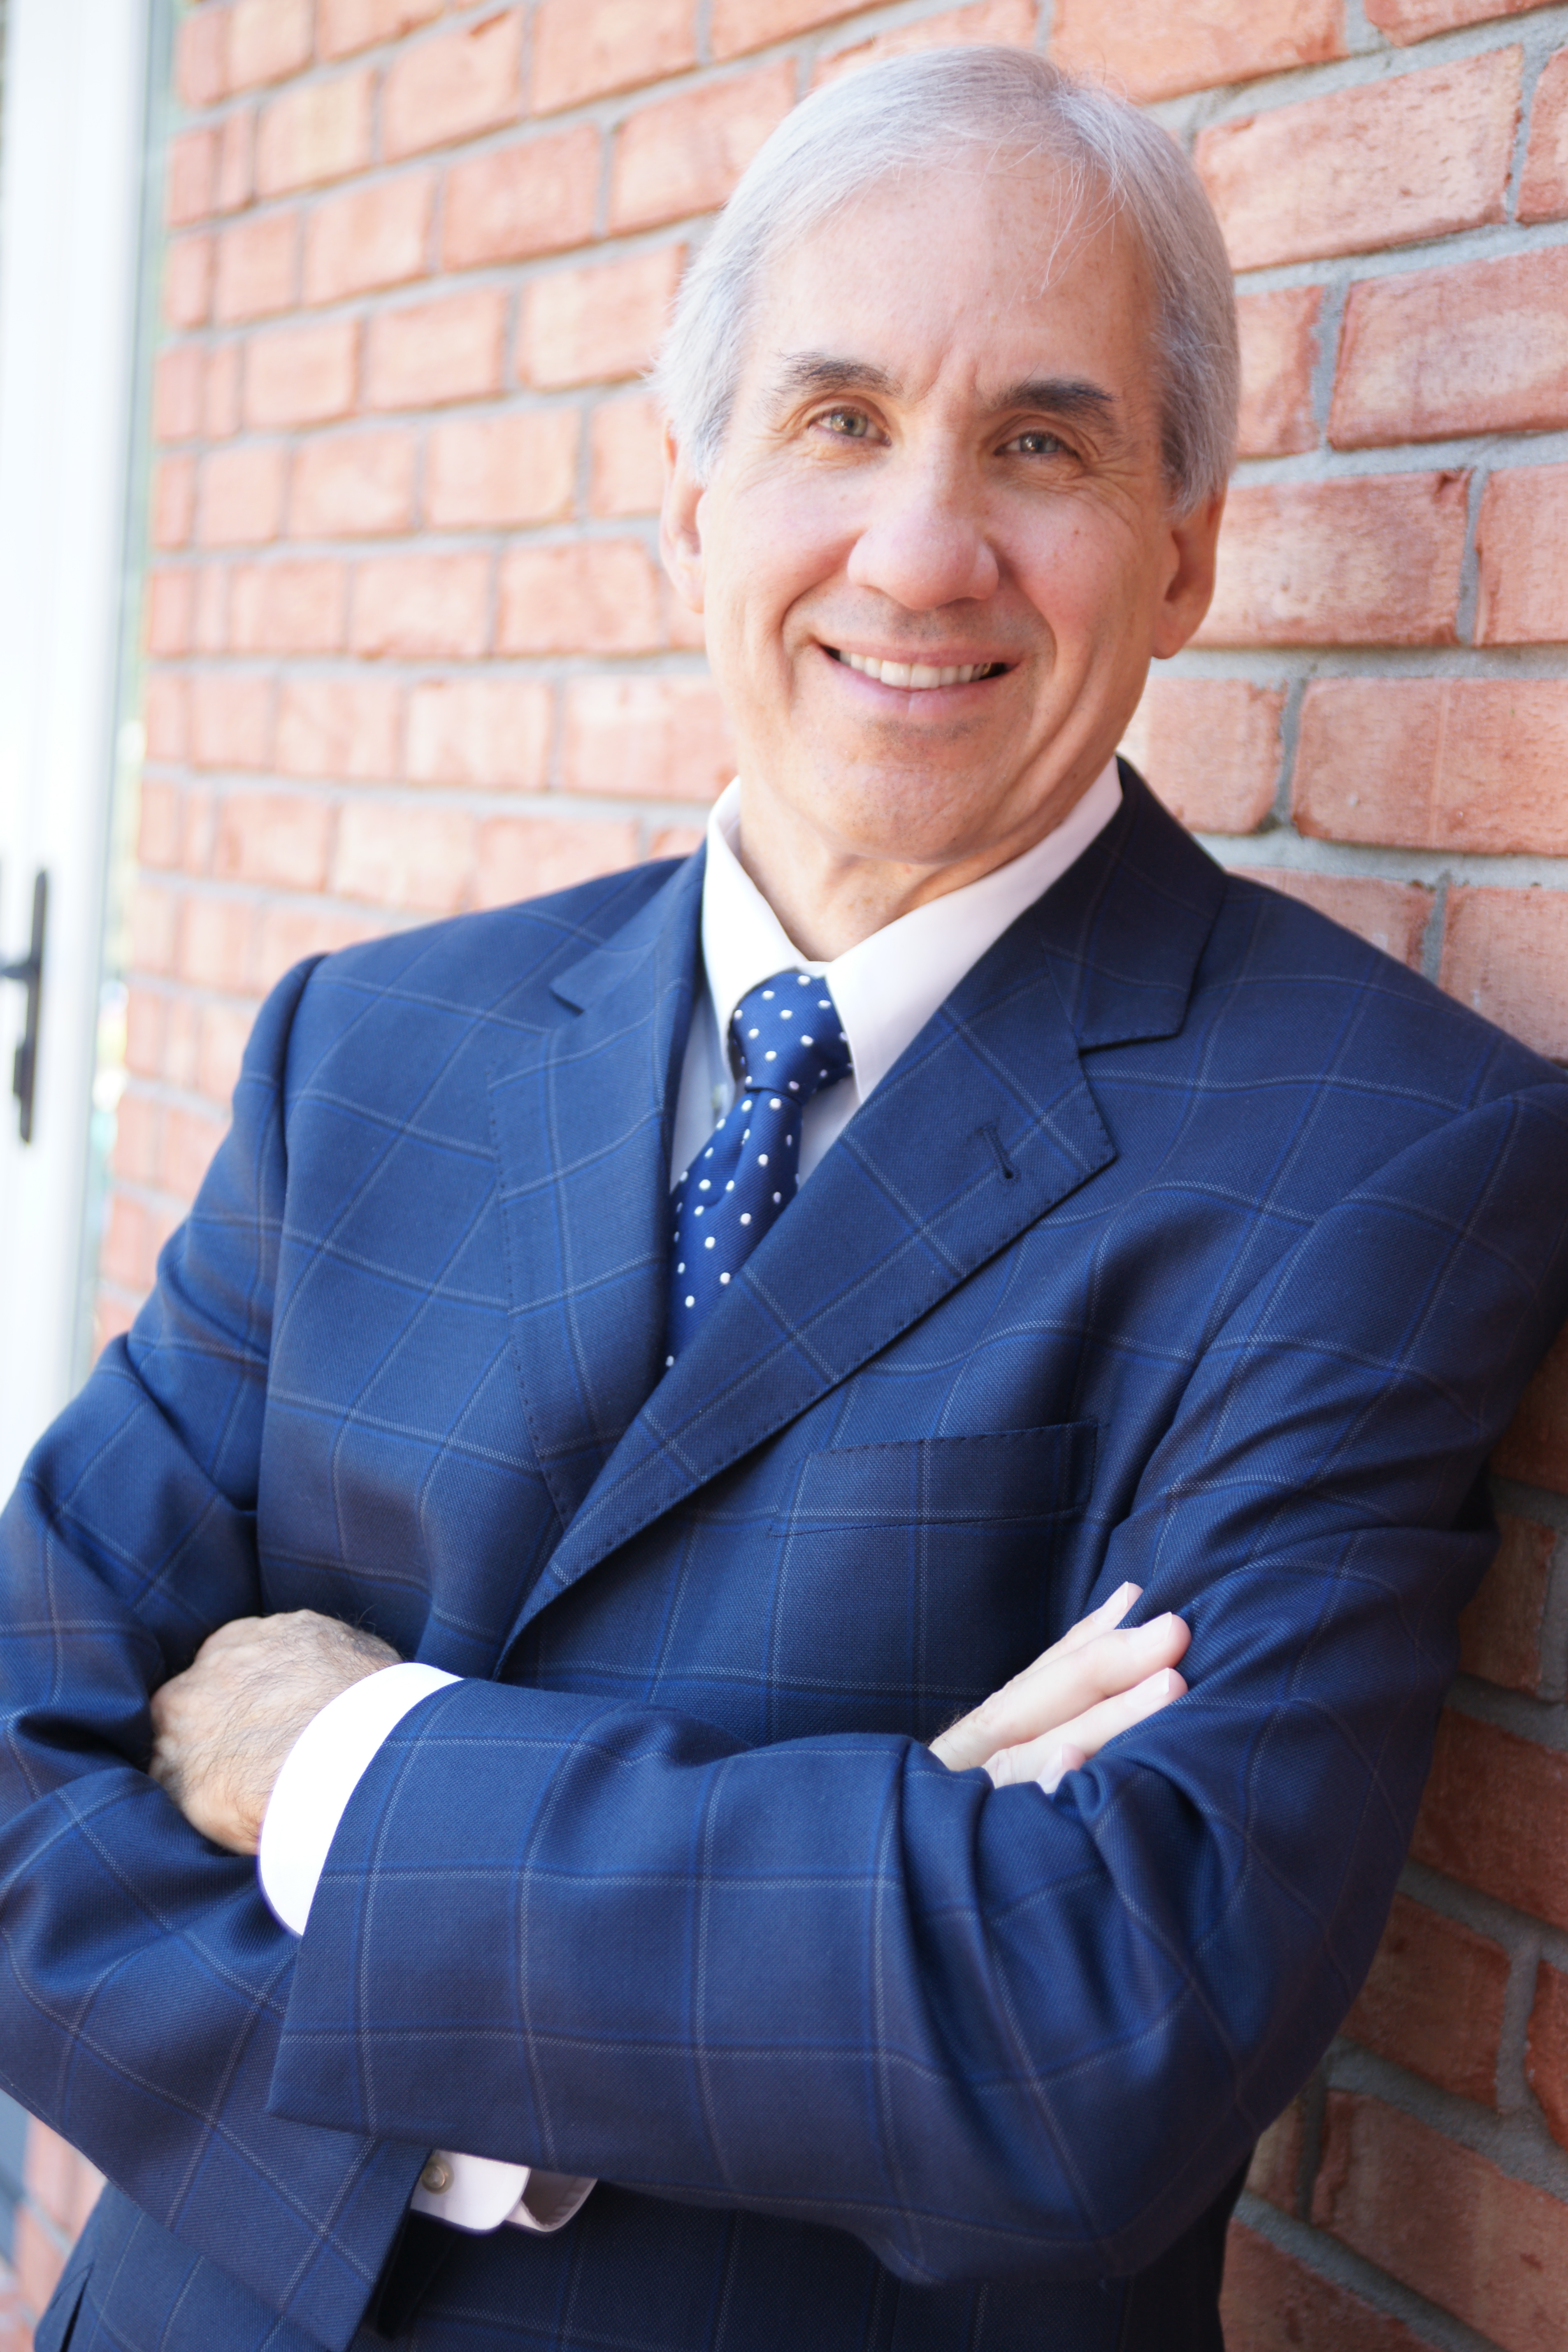 David Limbaugh: Authoritarian left vs. conservatives — Dems fear a level playing field, seek to control debate